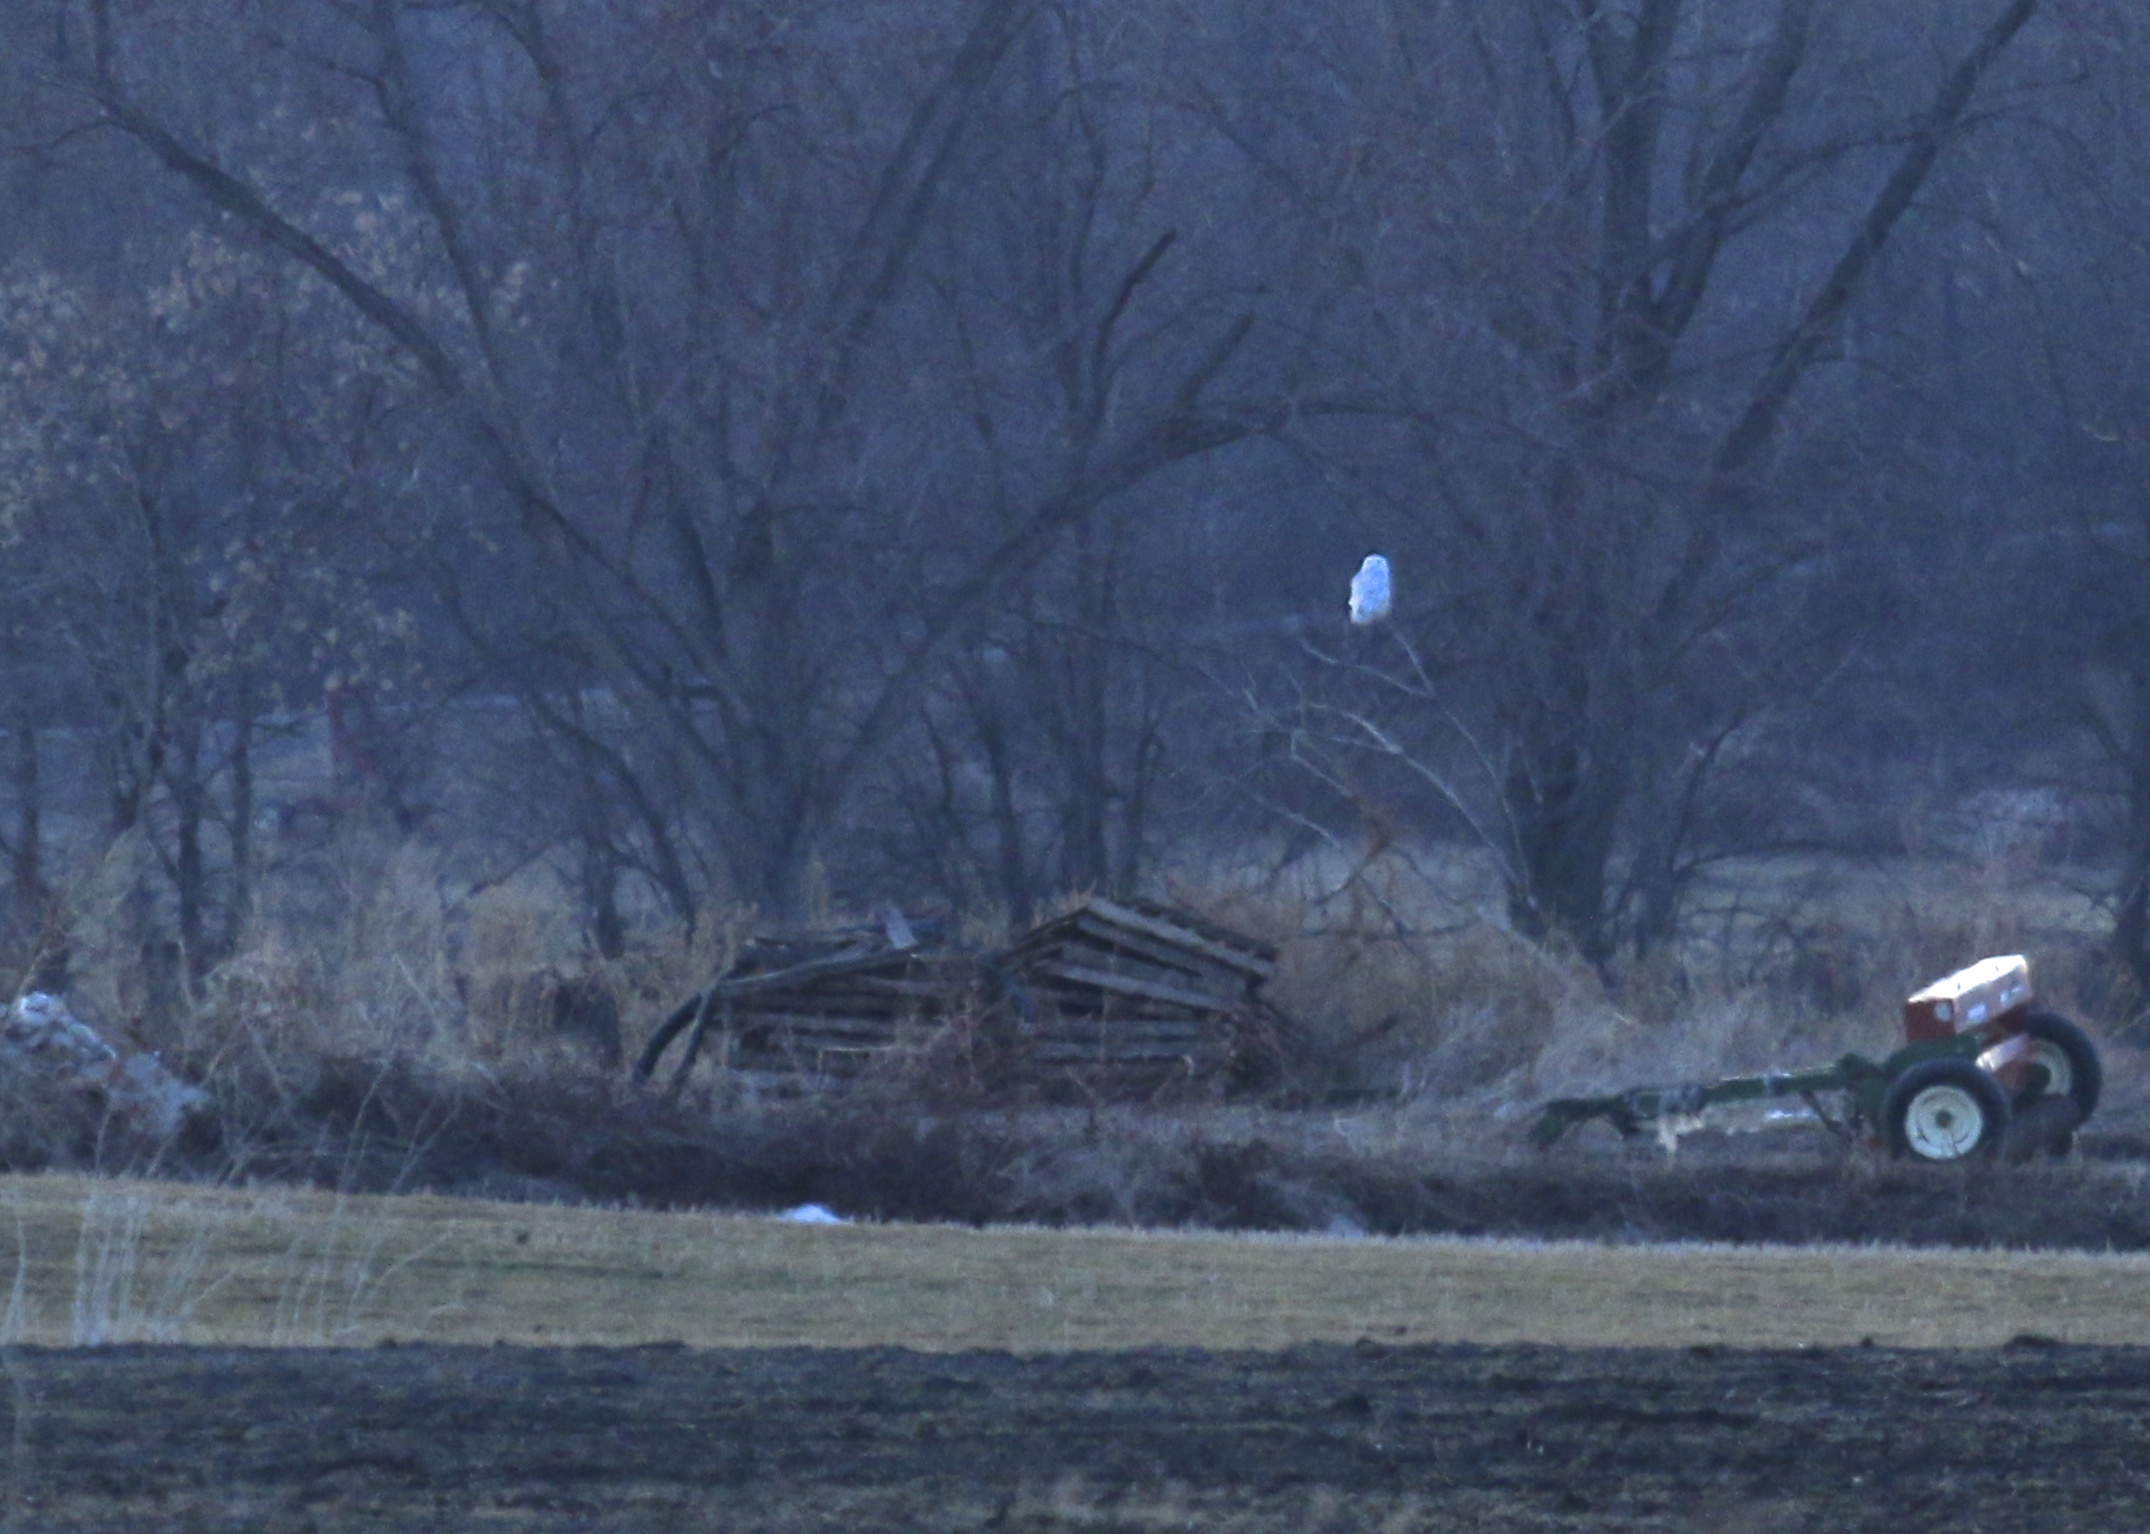 At least one Snowy Owl continued in the Black Dirt as of Friday night, 2/21/14.